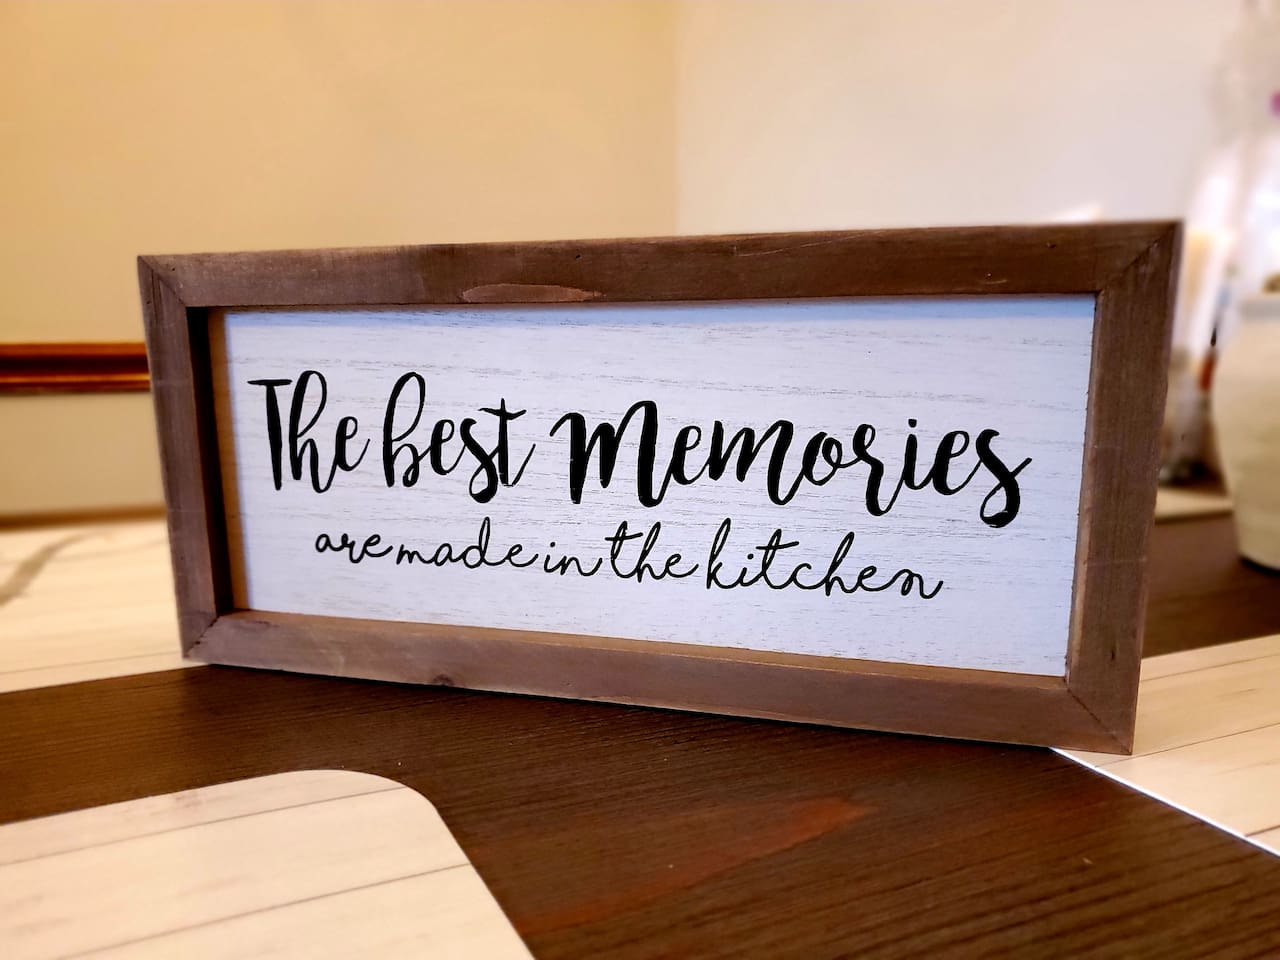 This is a great place to create memories